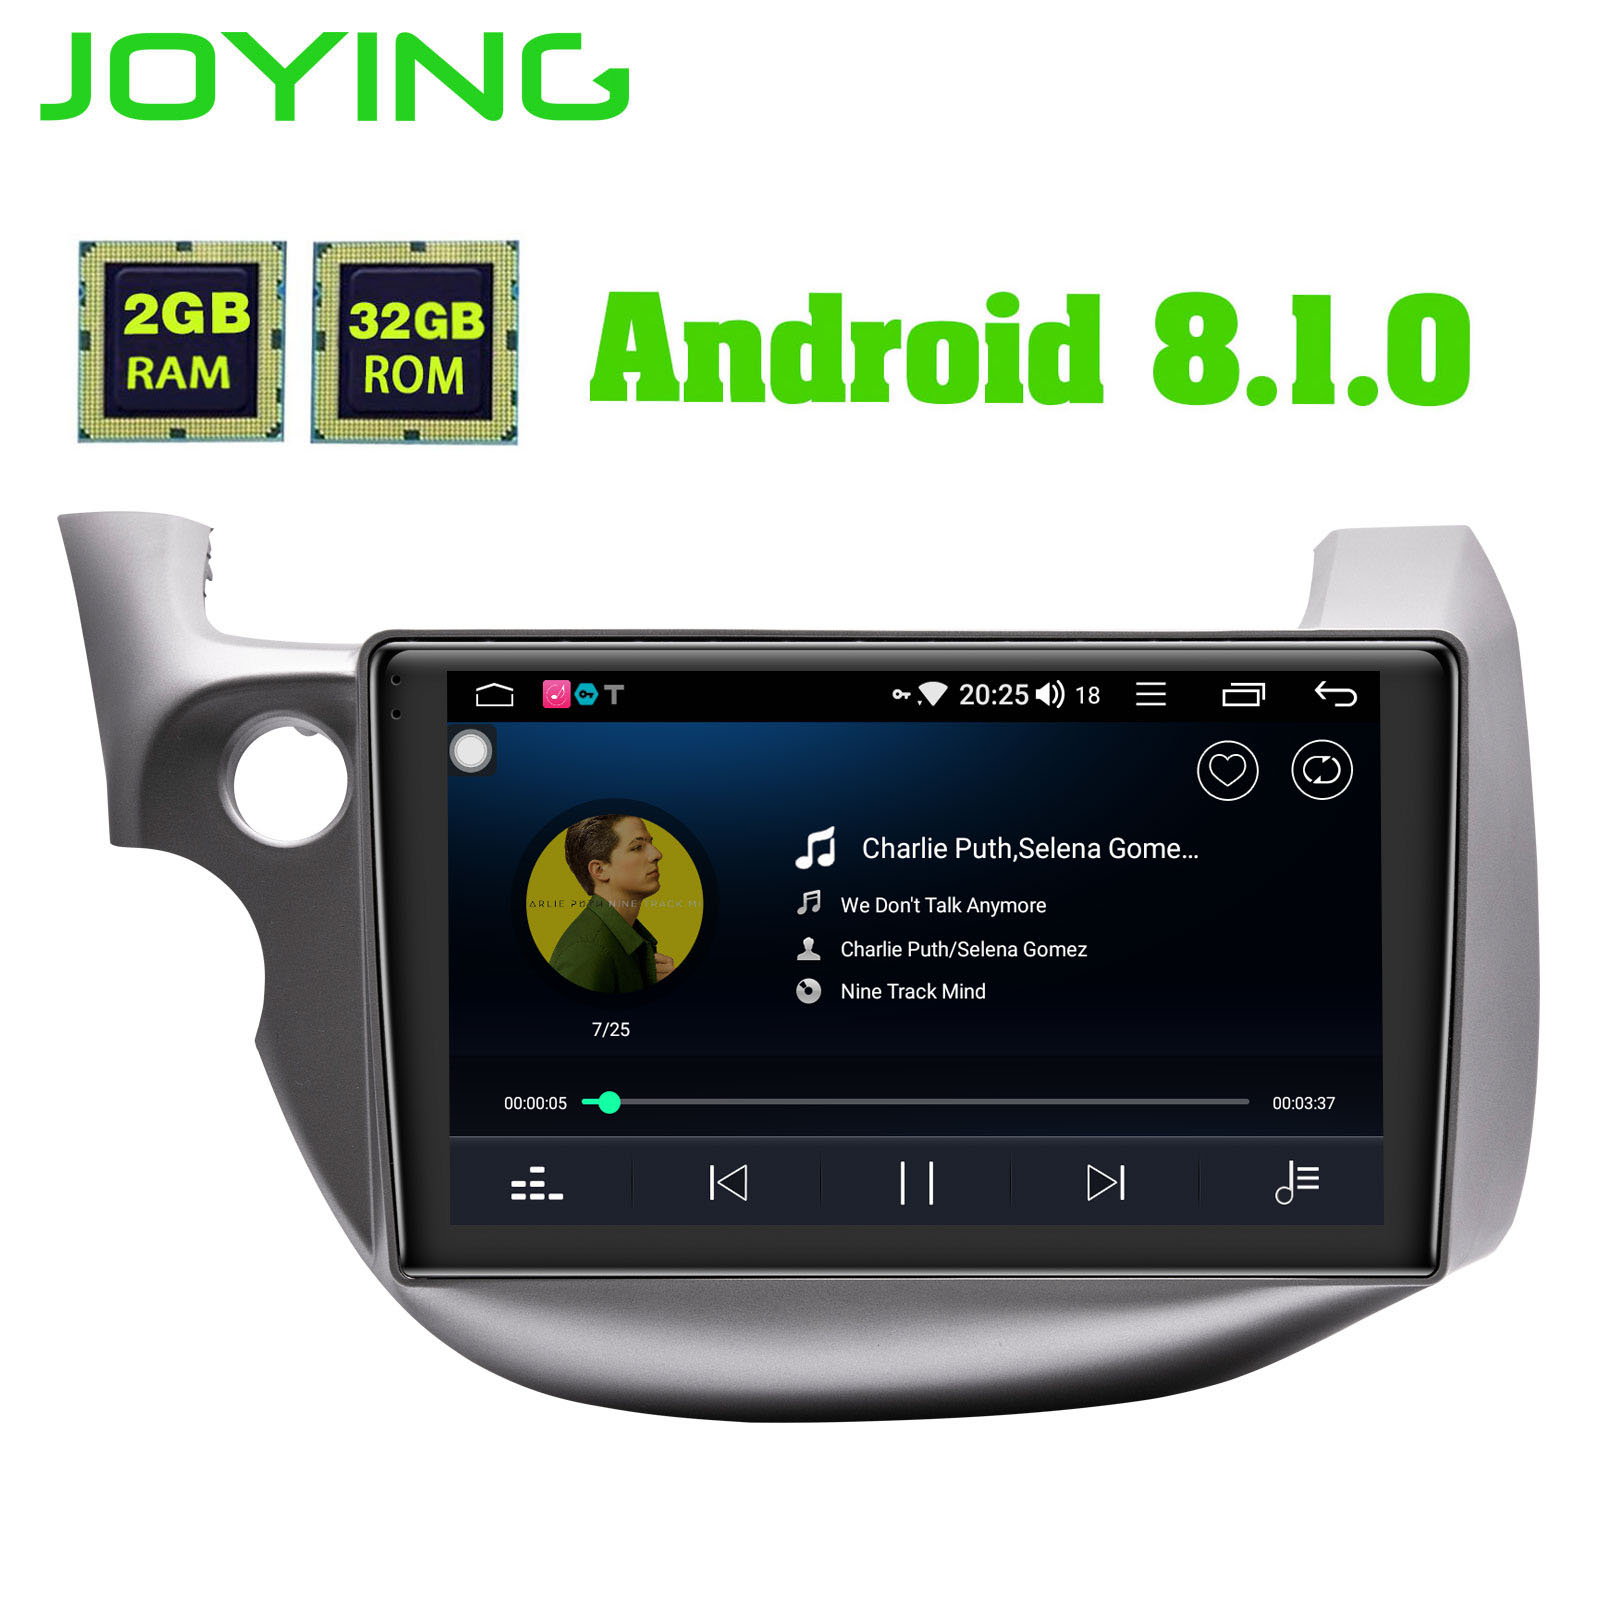 JOYING Android 8.1 Car Multimedia Player Tape Recorder GPS Navigator 8 core 32GB ROM 2GB RAM Radio for Honda Fit/Jazz 2008-2013